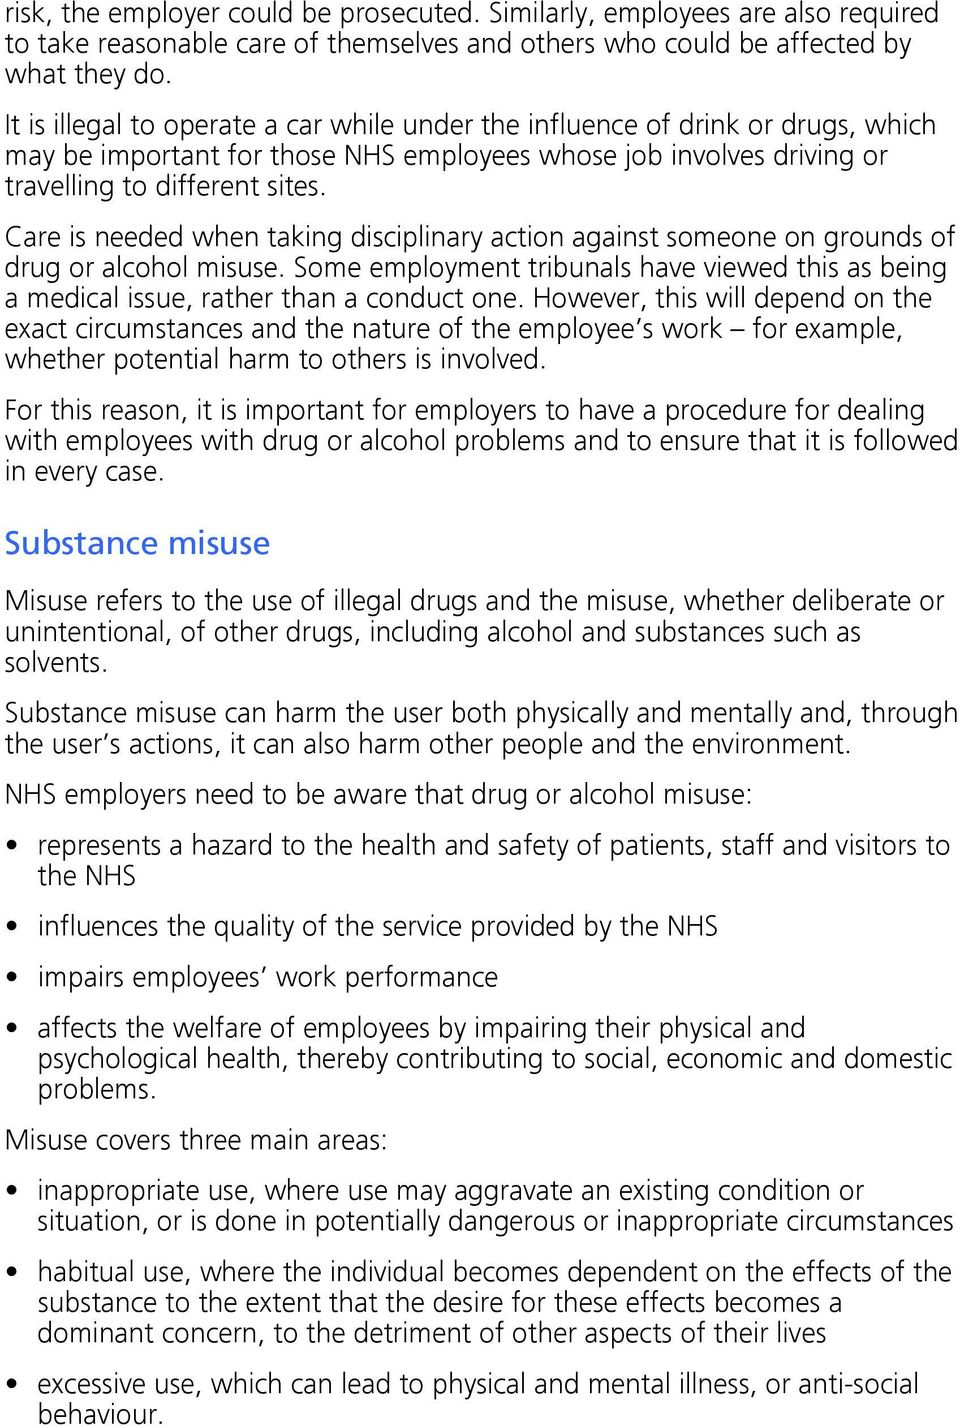 Care is needed when taking disciplinary action against someone on grounds of drug or alcohol misuse. Some employment tribunals have viewed this as being a medical issue, rather than a conduct one.